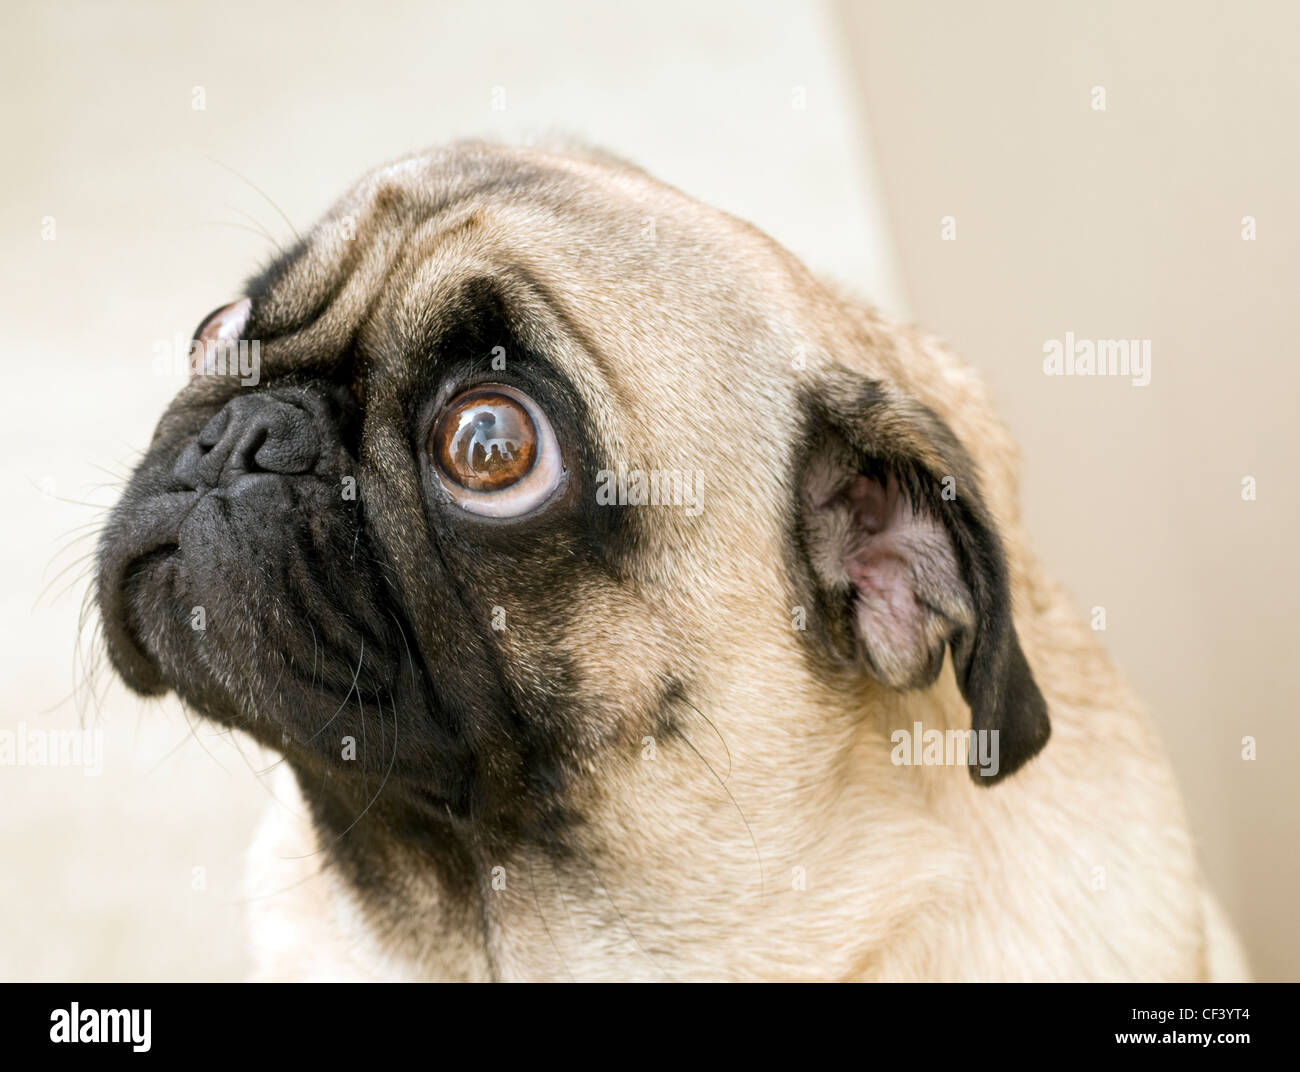 Pug Begging, Looking up at You. - Stock Image